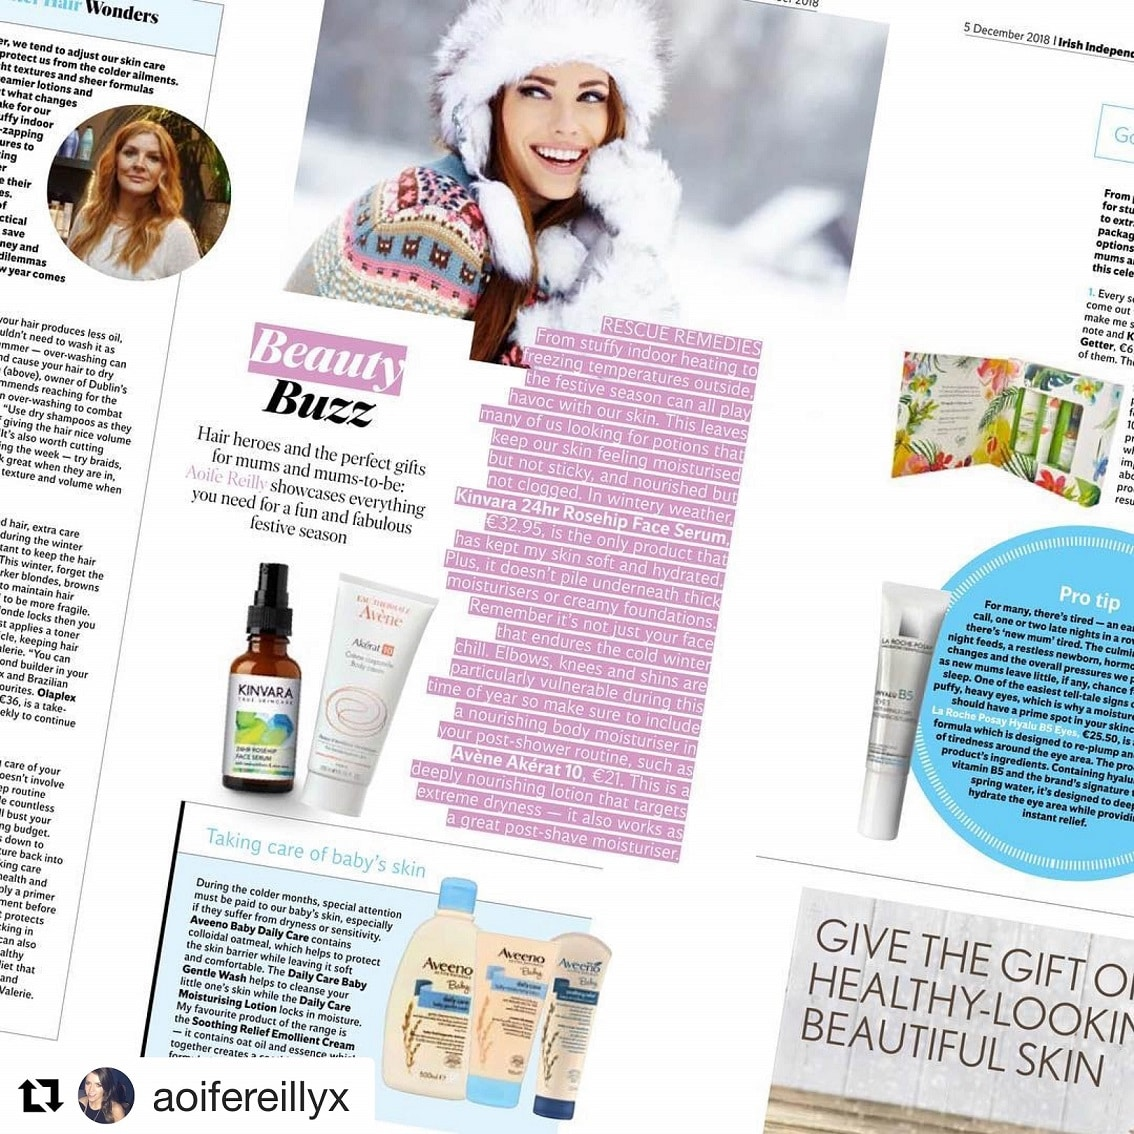 Mask Hair in the Press beauty buzz